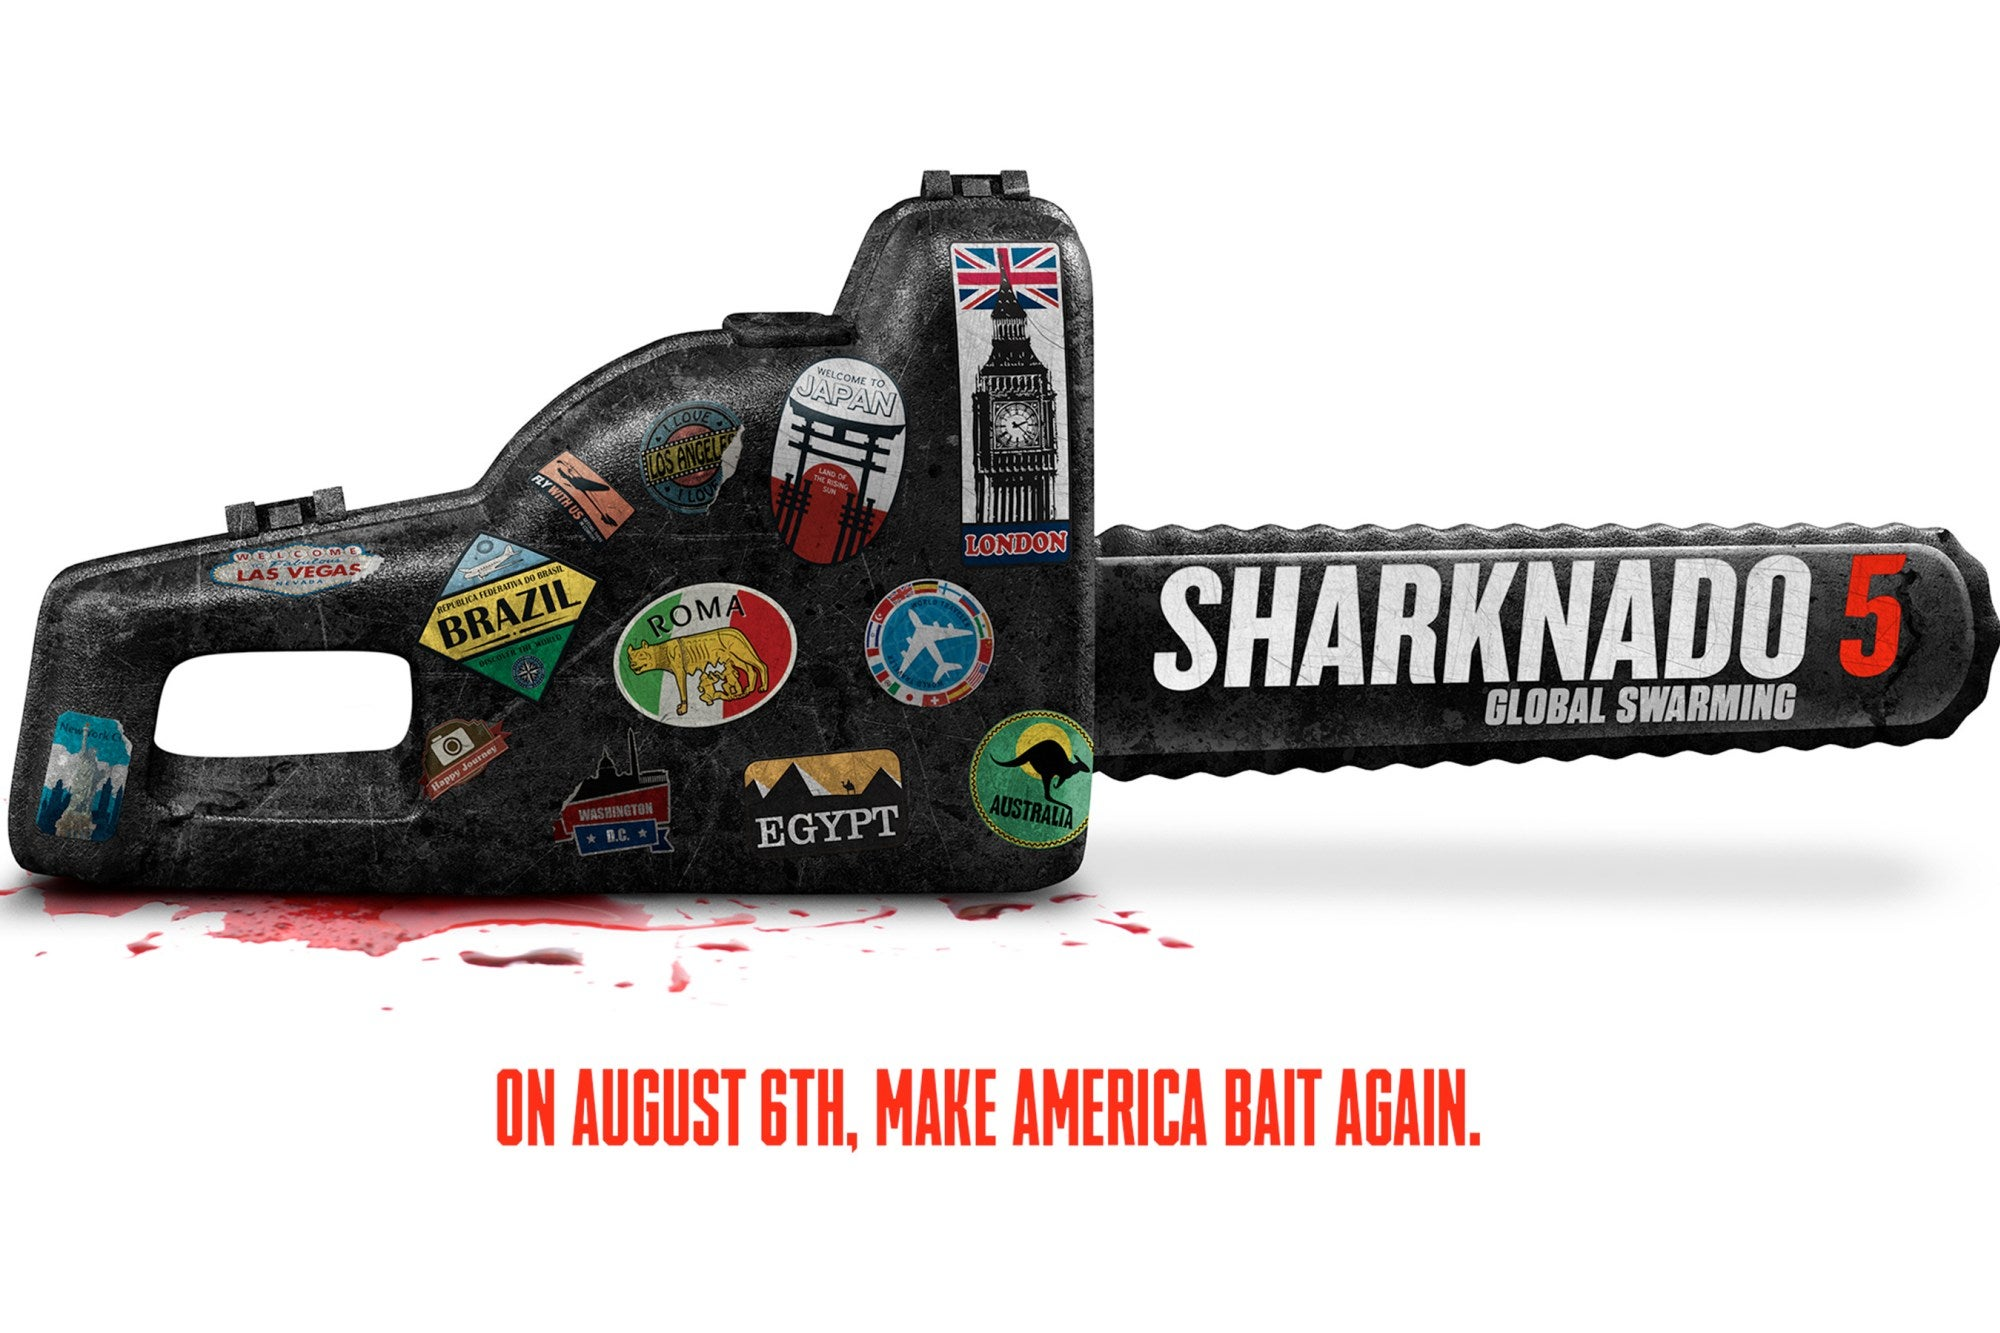 sharknado-5 teaser-art-1